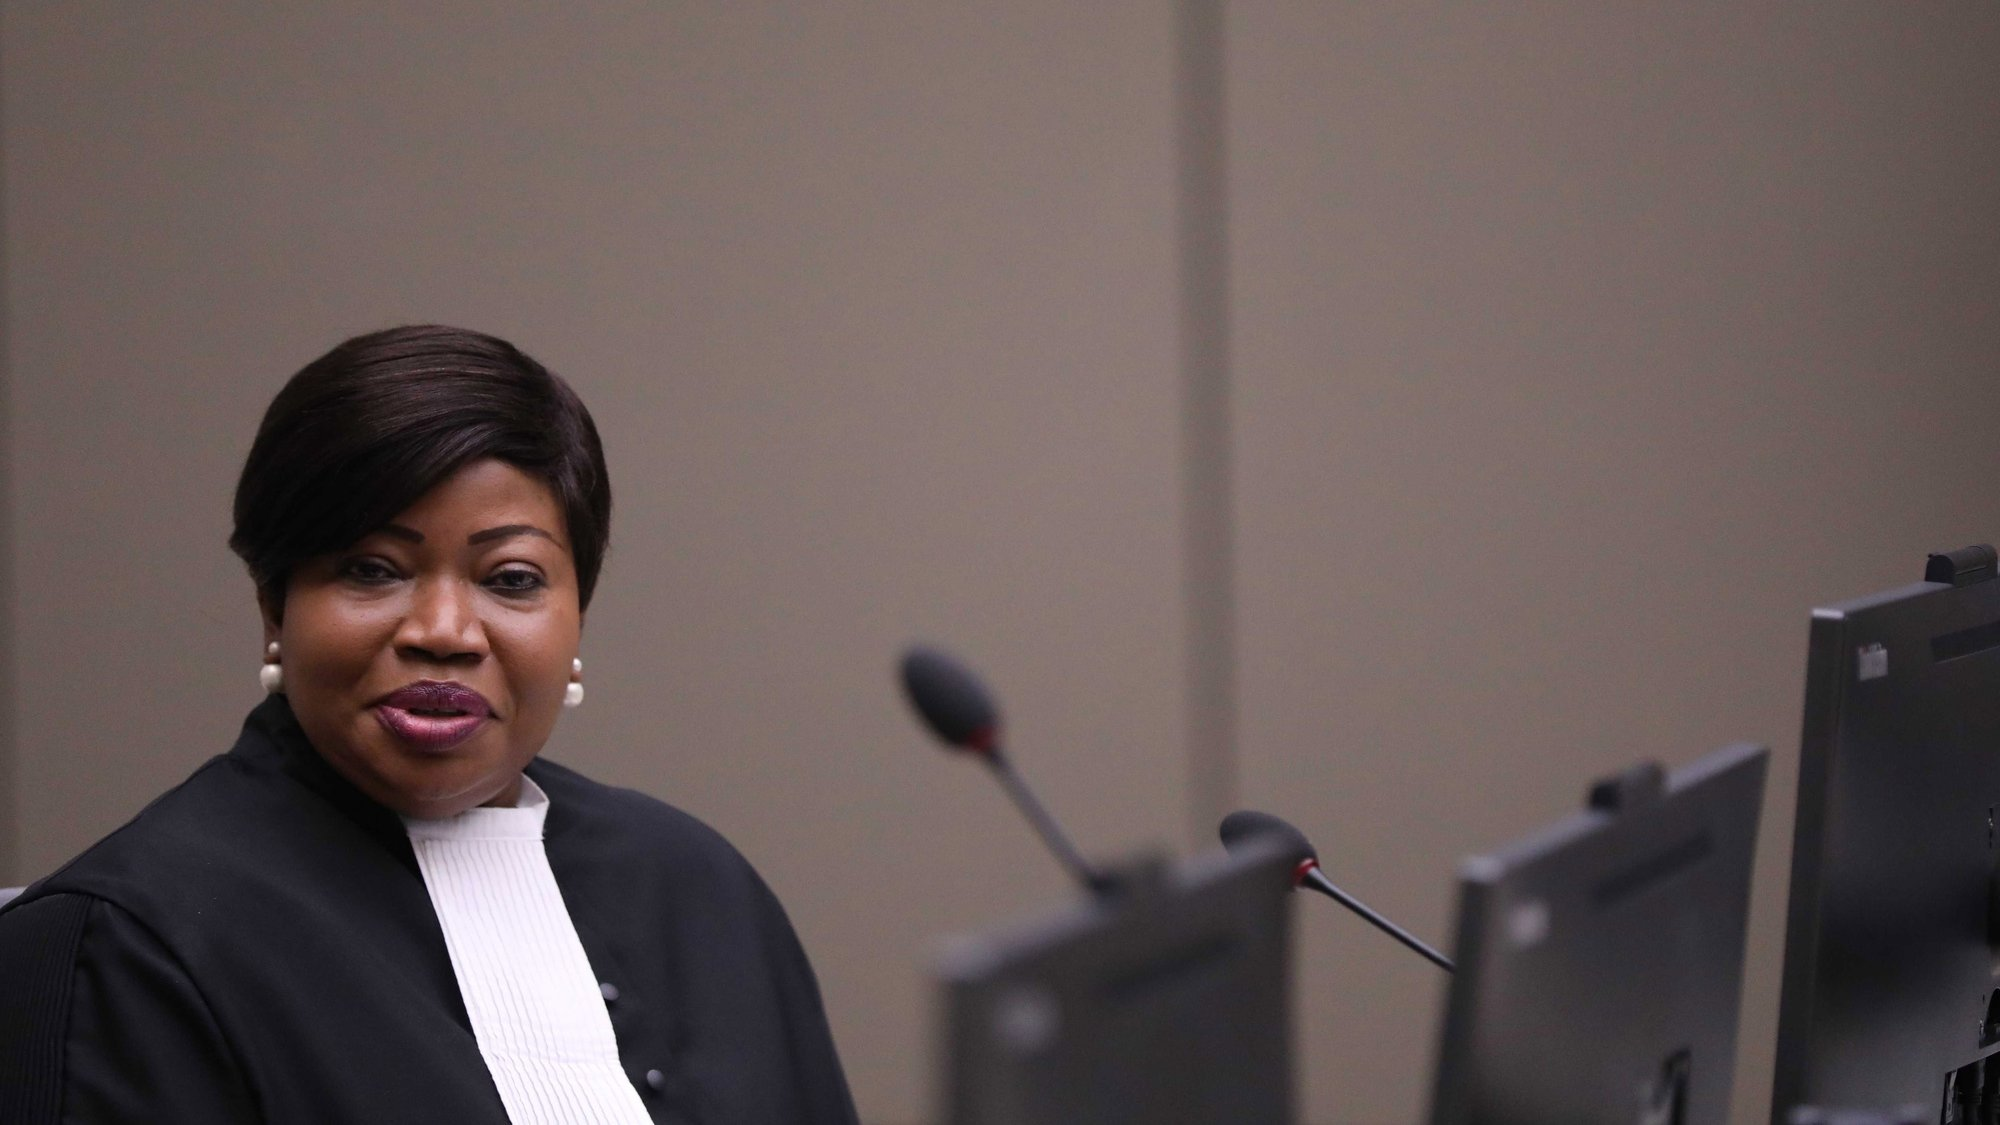 epa07703758 Prosecutor Fatou Bensouda appears in court during the trial of alleged Malian Islamist militant Al-Hassan Ag Abdoul Aziz Ag Mohamed Ag Mahmoud (not pictured), in the courtroom of the International Criminal Court (ICC) during his trial in the Hague, the Netherlands, 08 July 2019. He is charged with crimes against humanity and war crimes allegedly committed in Timbuktu.  EPA/EVA PLEVIER / POOL